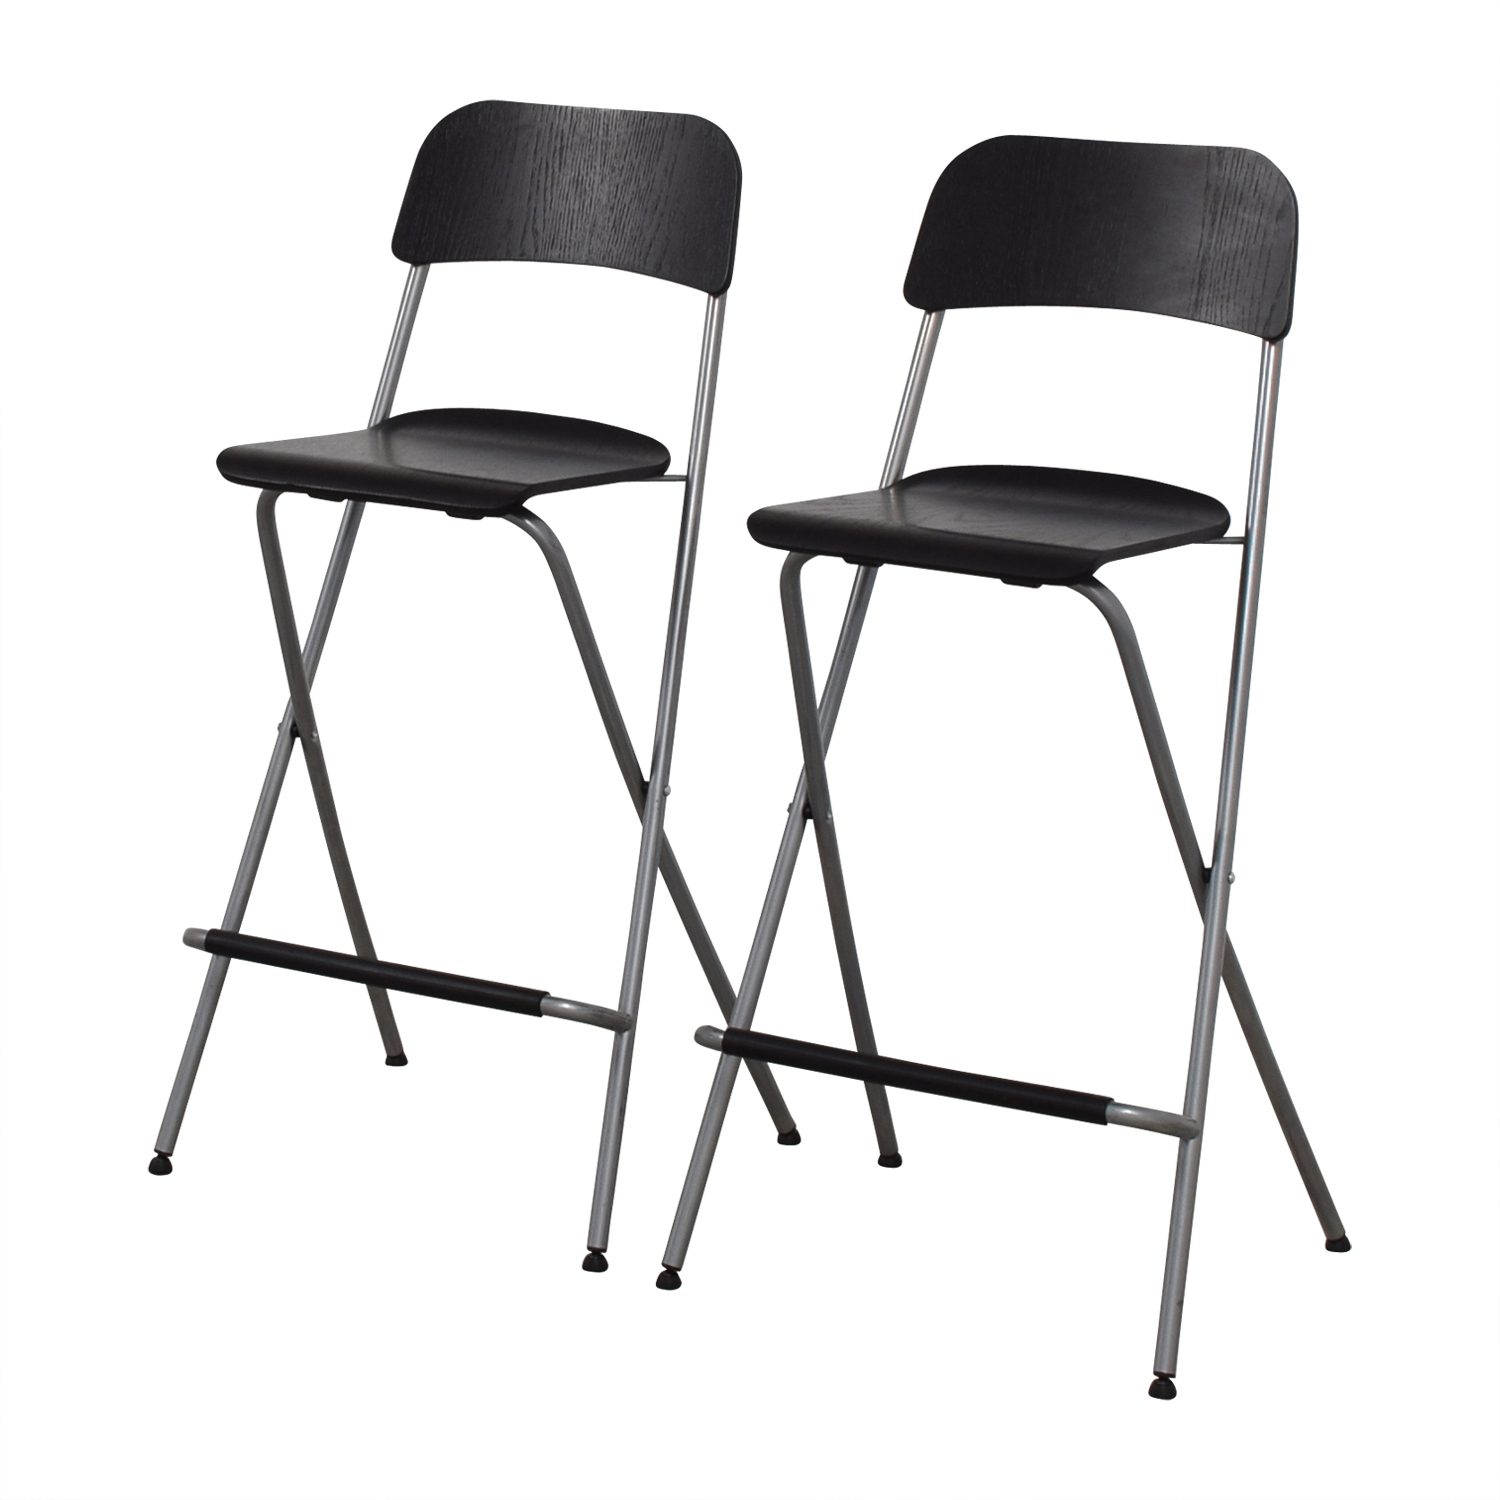 OFF IKEA Foldable Barstool Chairs Chairs